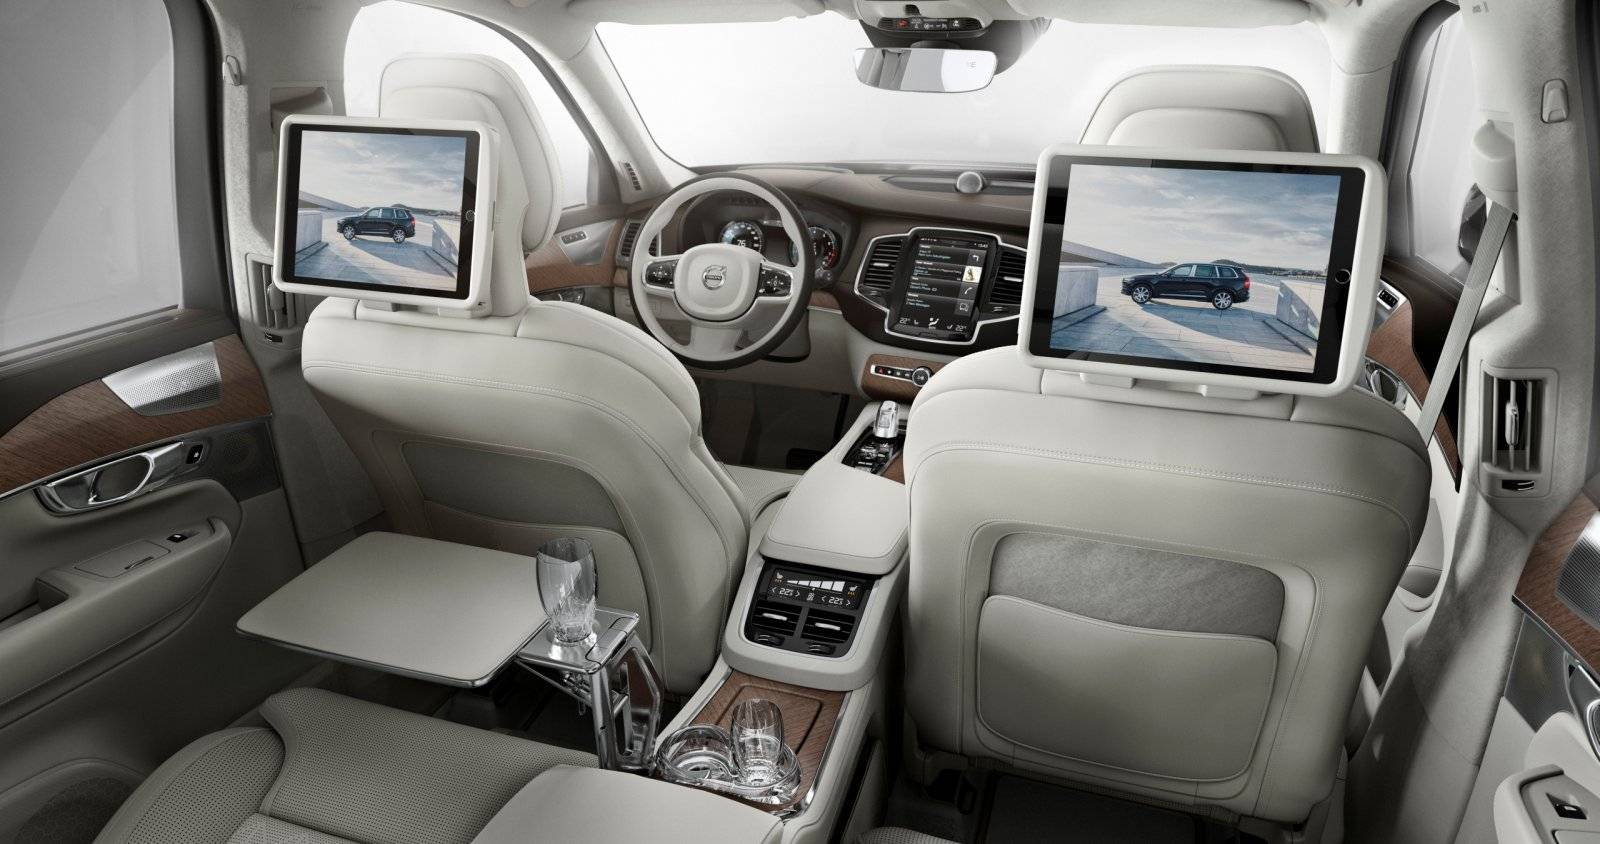 Volvo Xc Excellence on 2004 Chrysler Pacifica